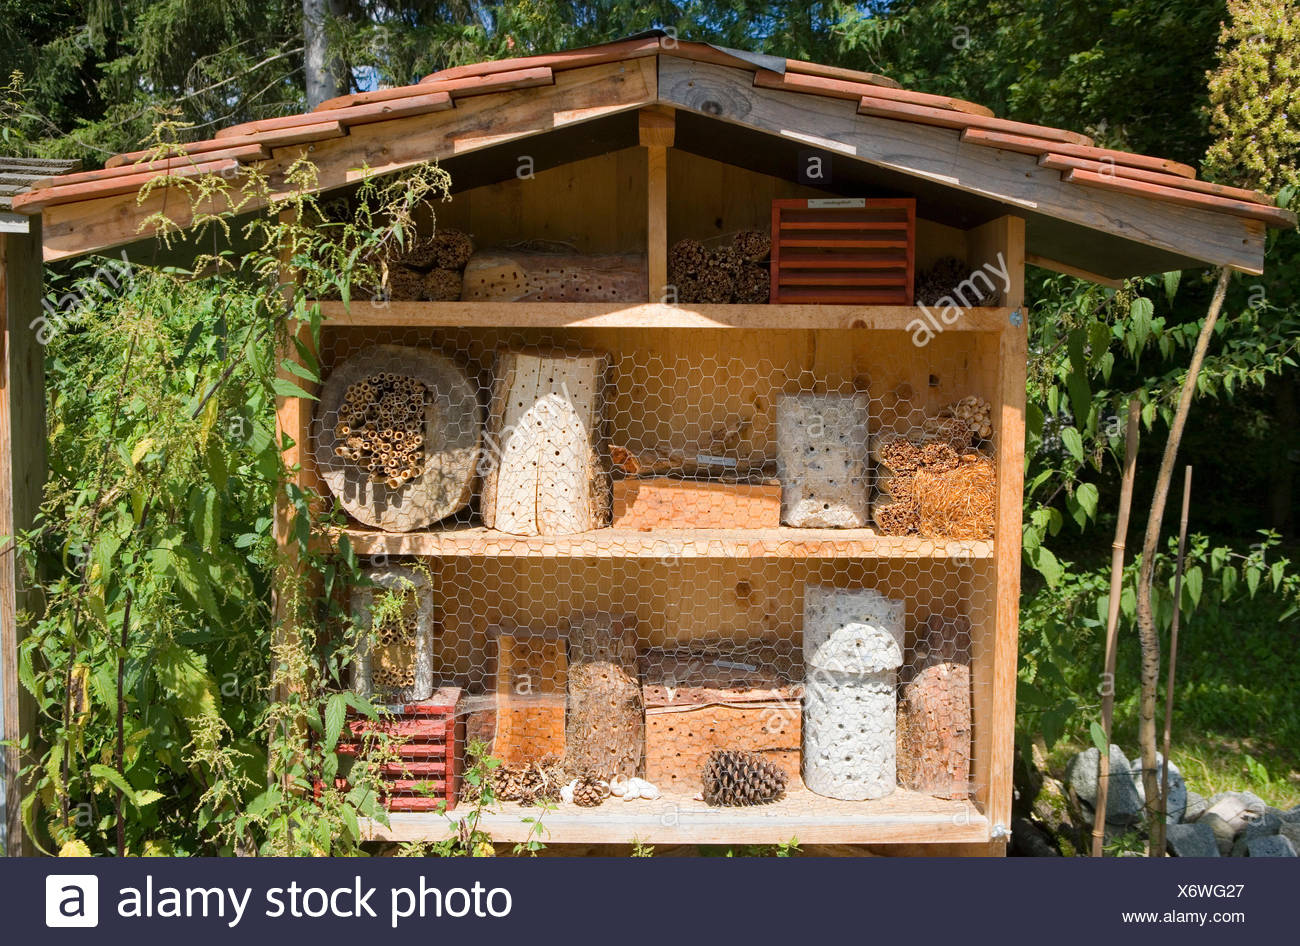 Botanischer Garten München-Nymphenburg (botanical garden), 16, 000 plants are cultivated, insect hotel for beneficial organism like wild bees, ladybirds, butterflies - Stock Image